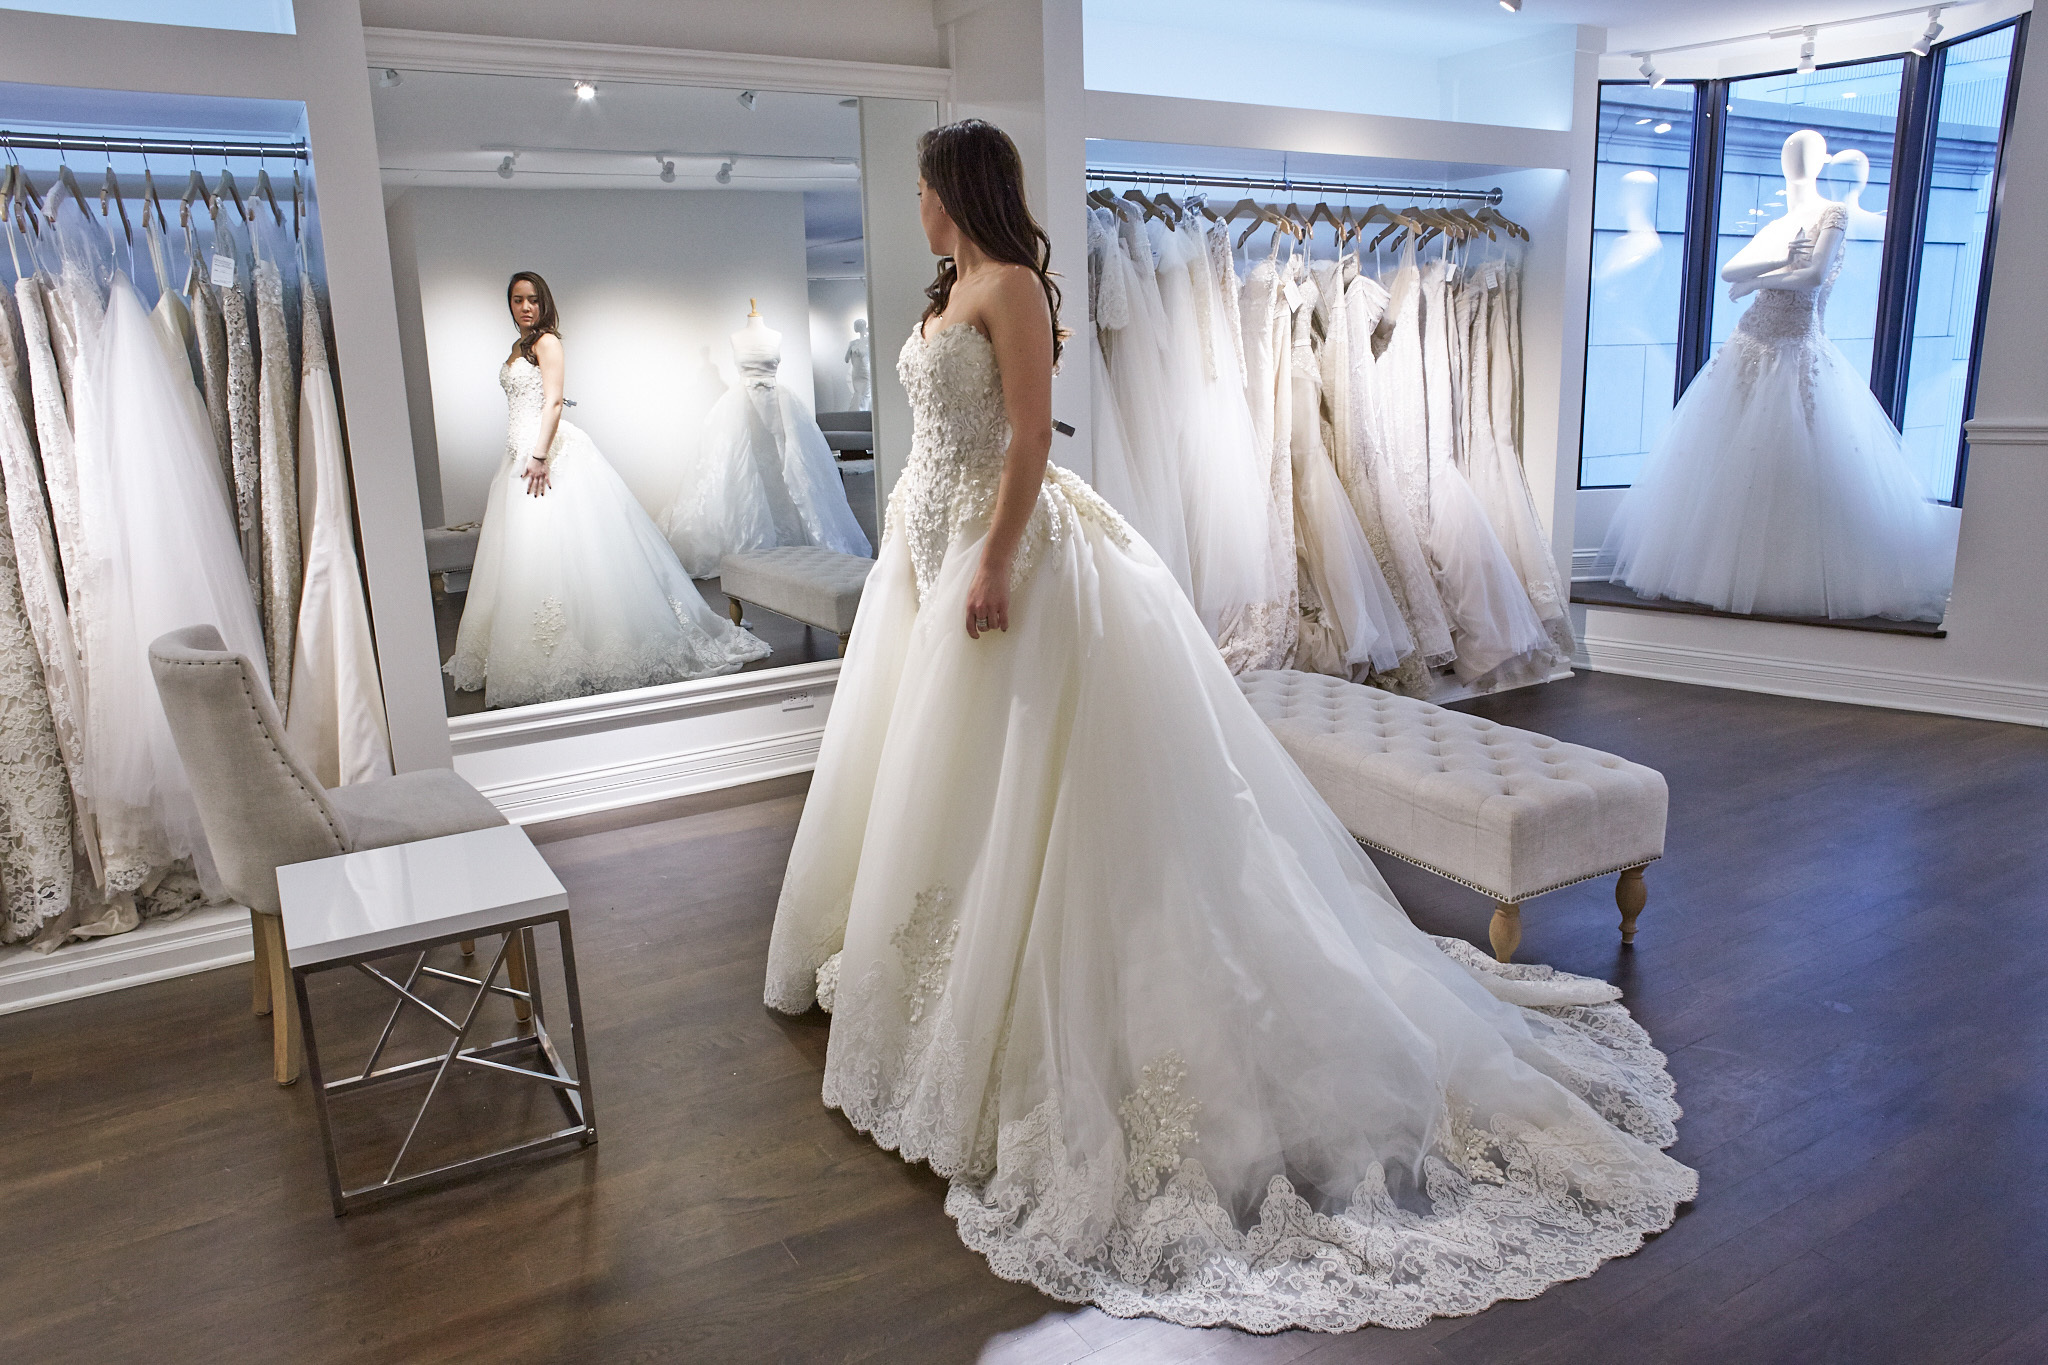 The best bridal shops in chicago for the perfect wedding dress for Wedding dress boutiques chicago